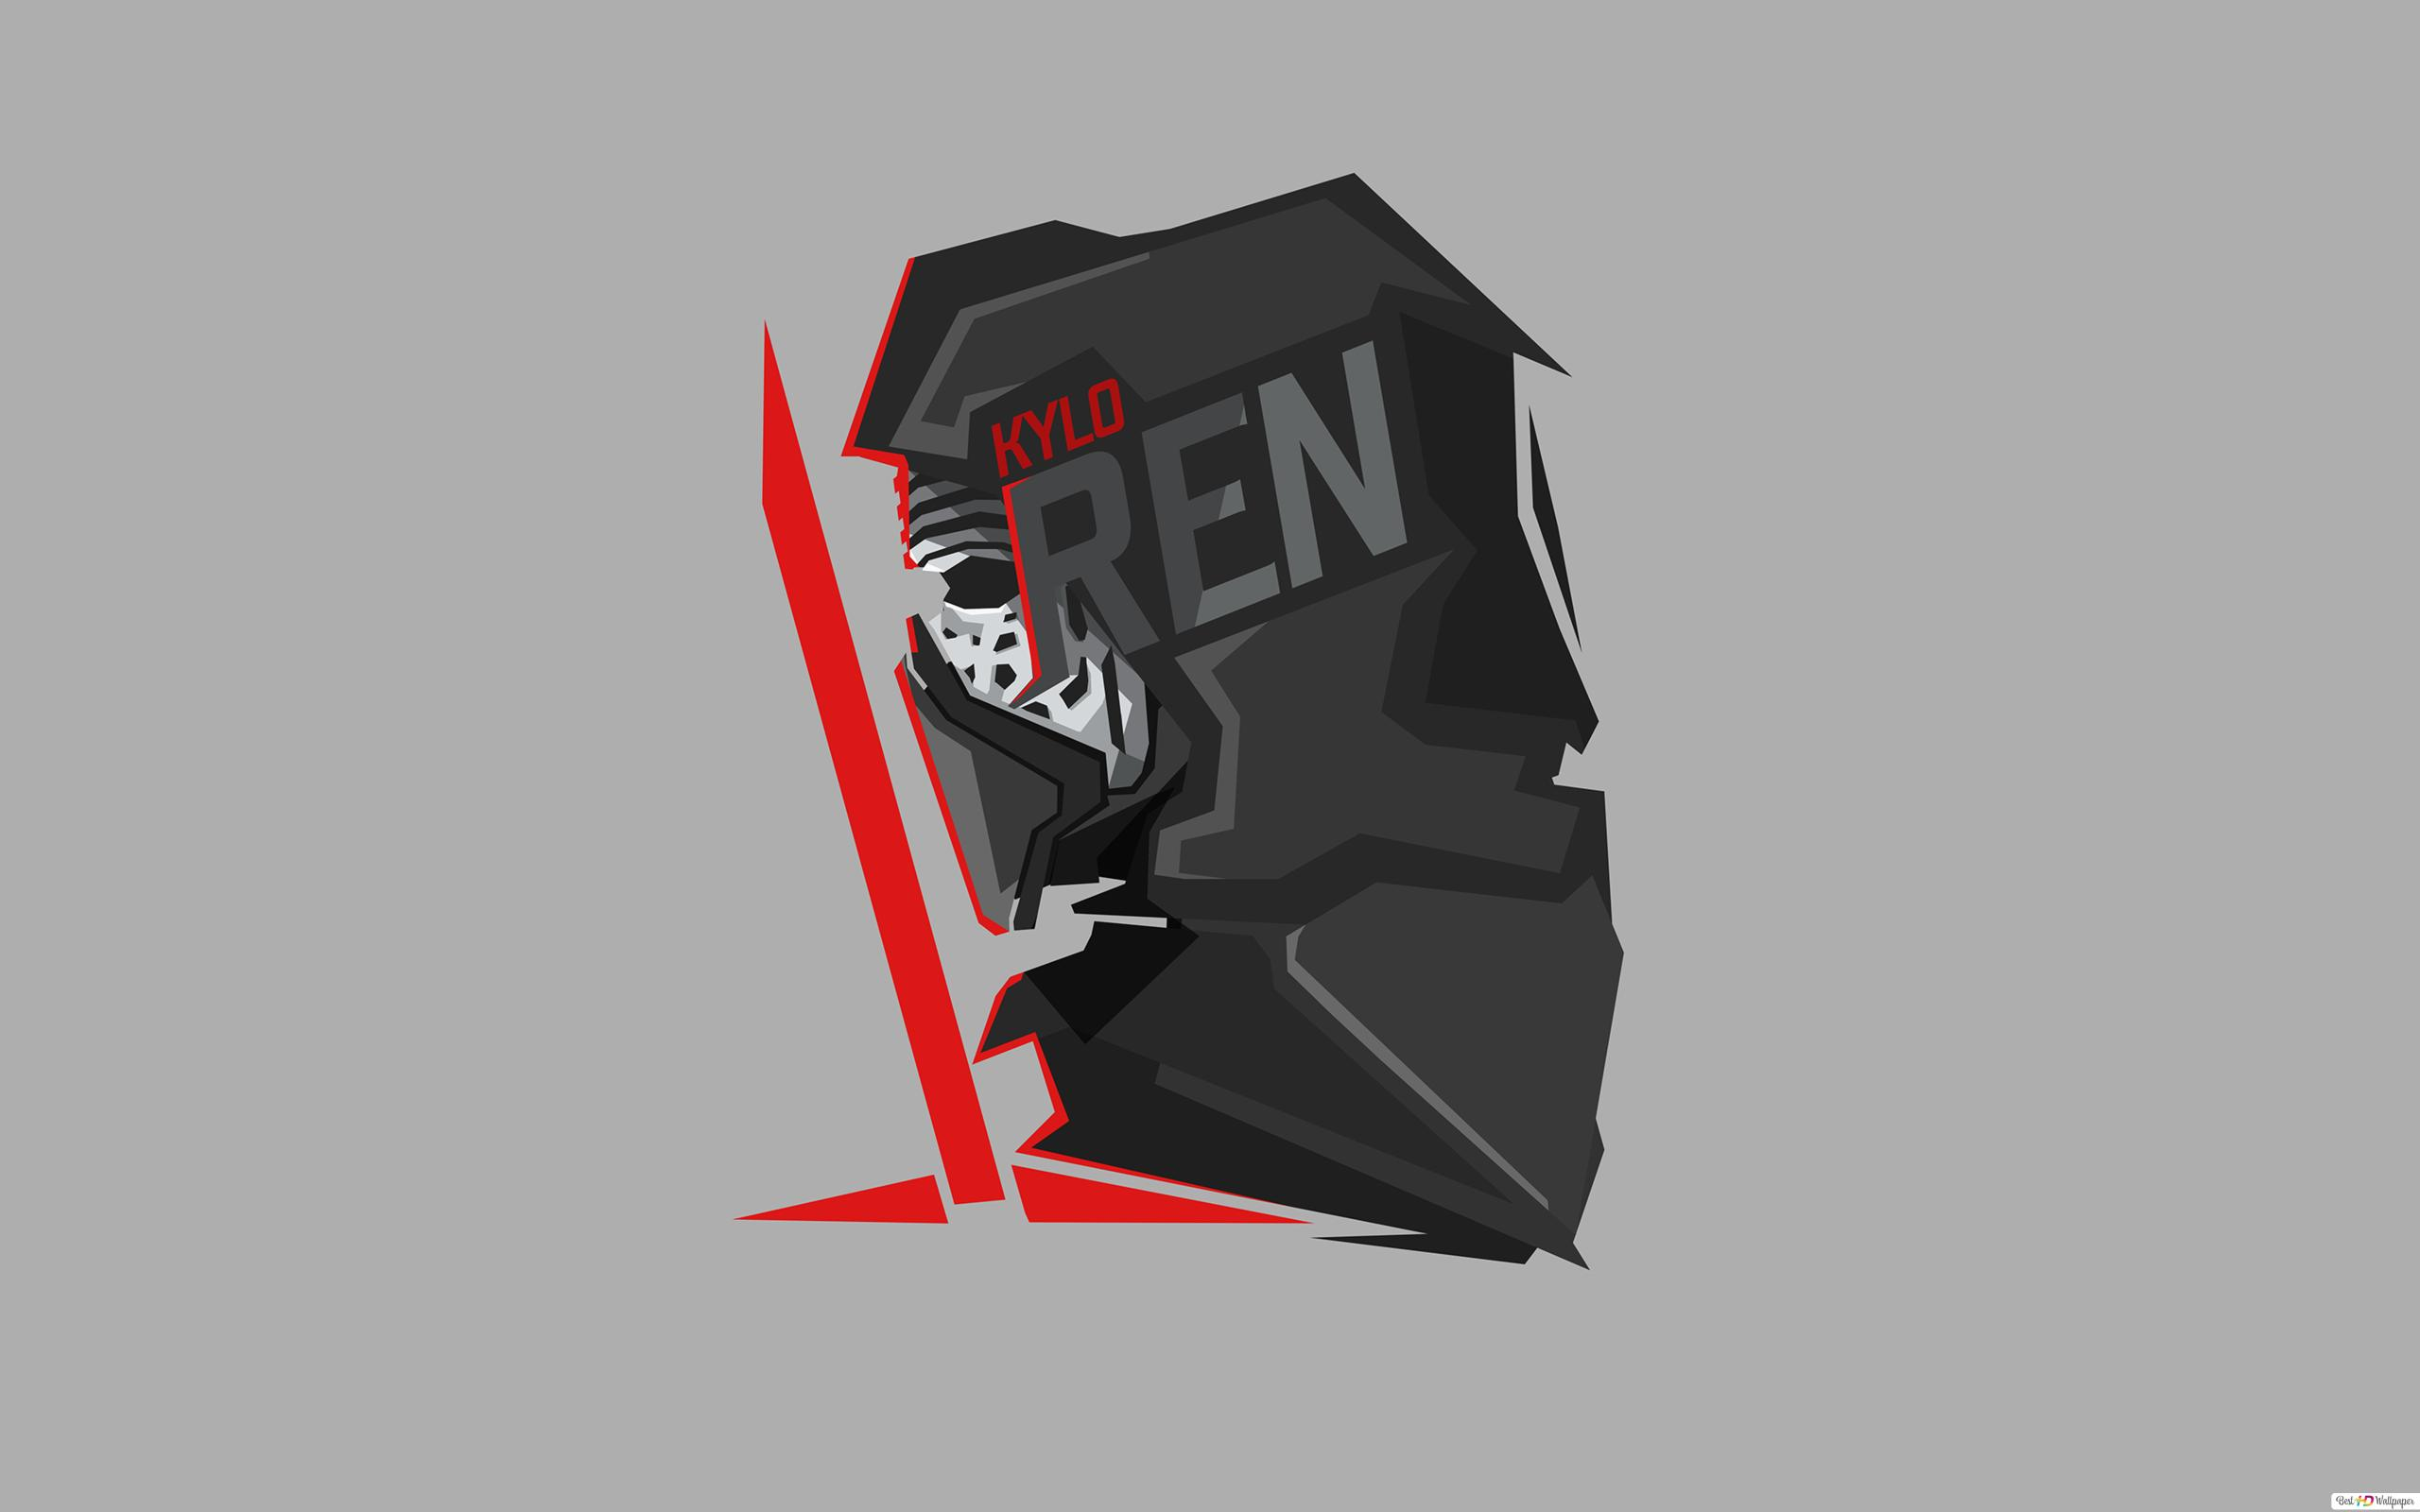 Star Wars Kylo Ren In Gray Wallpaper Minimalist Hd Wallpaper Download